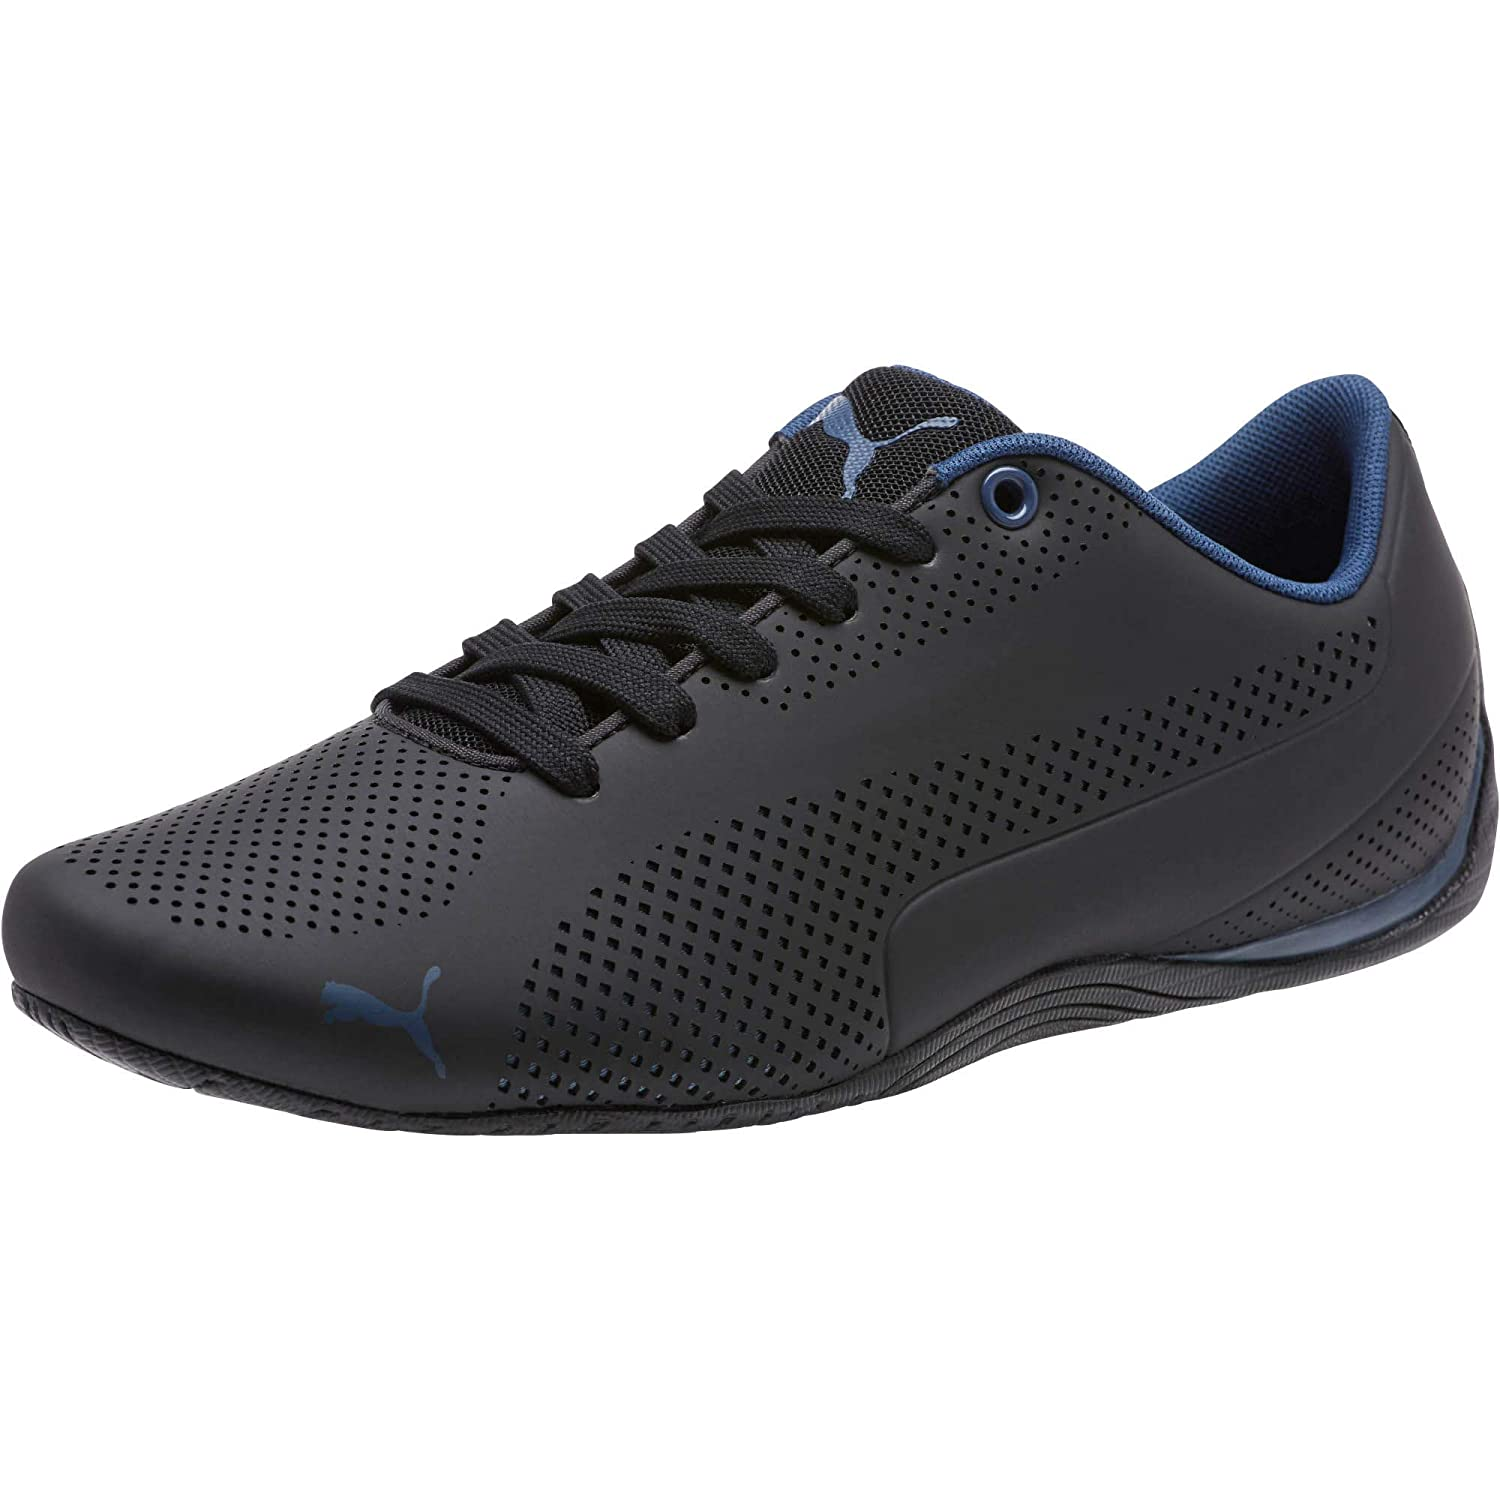 97c4bd5a5f PUMA Men s Drift CAT 5 Ultra Walking Shoe Black  Amazon.com.au  Fashion